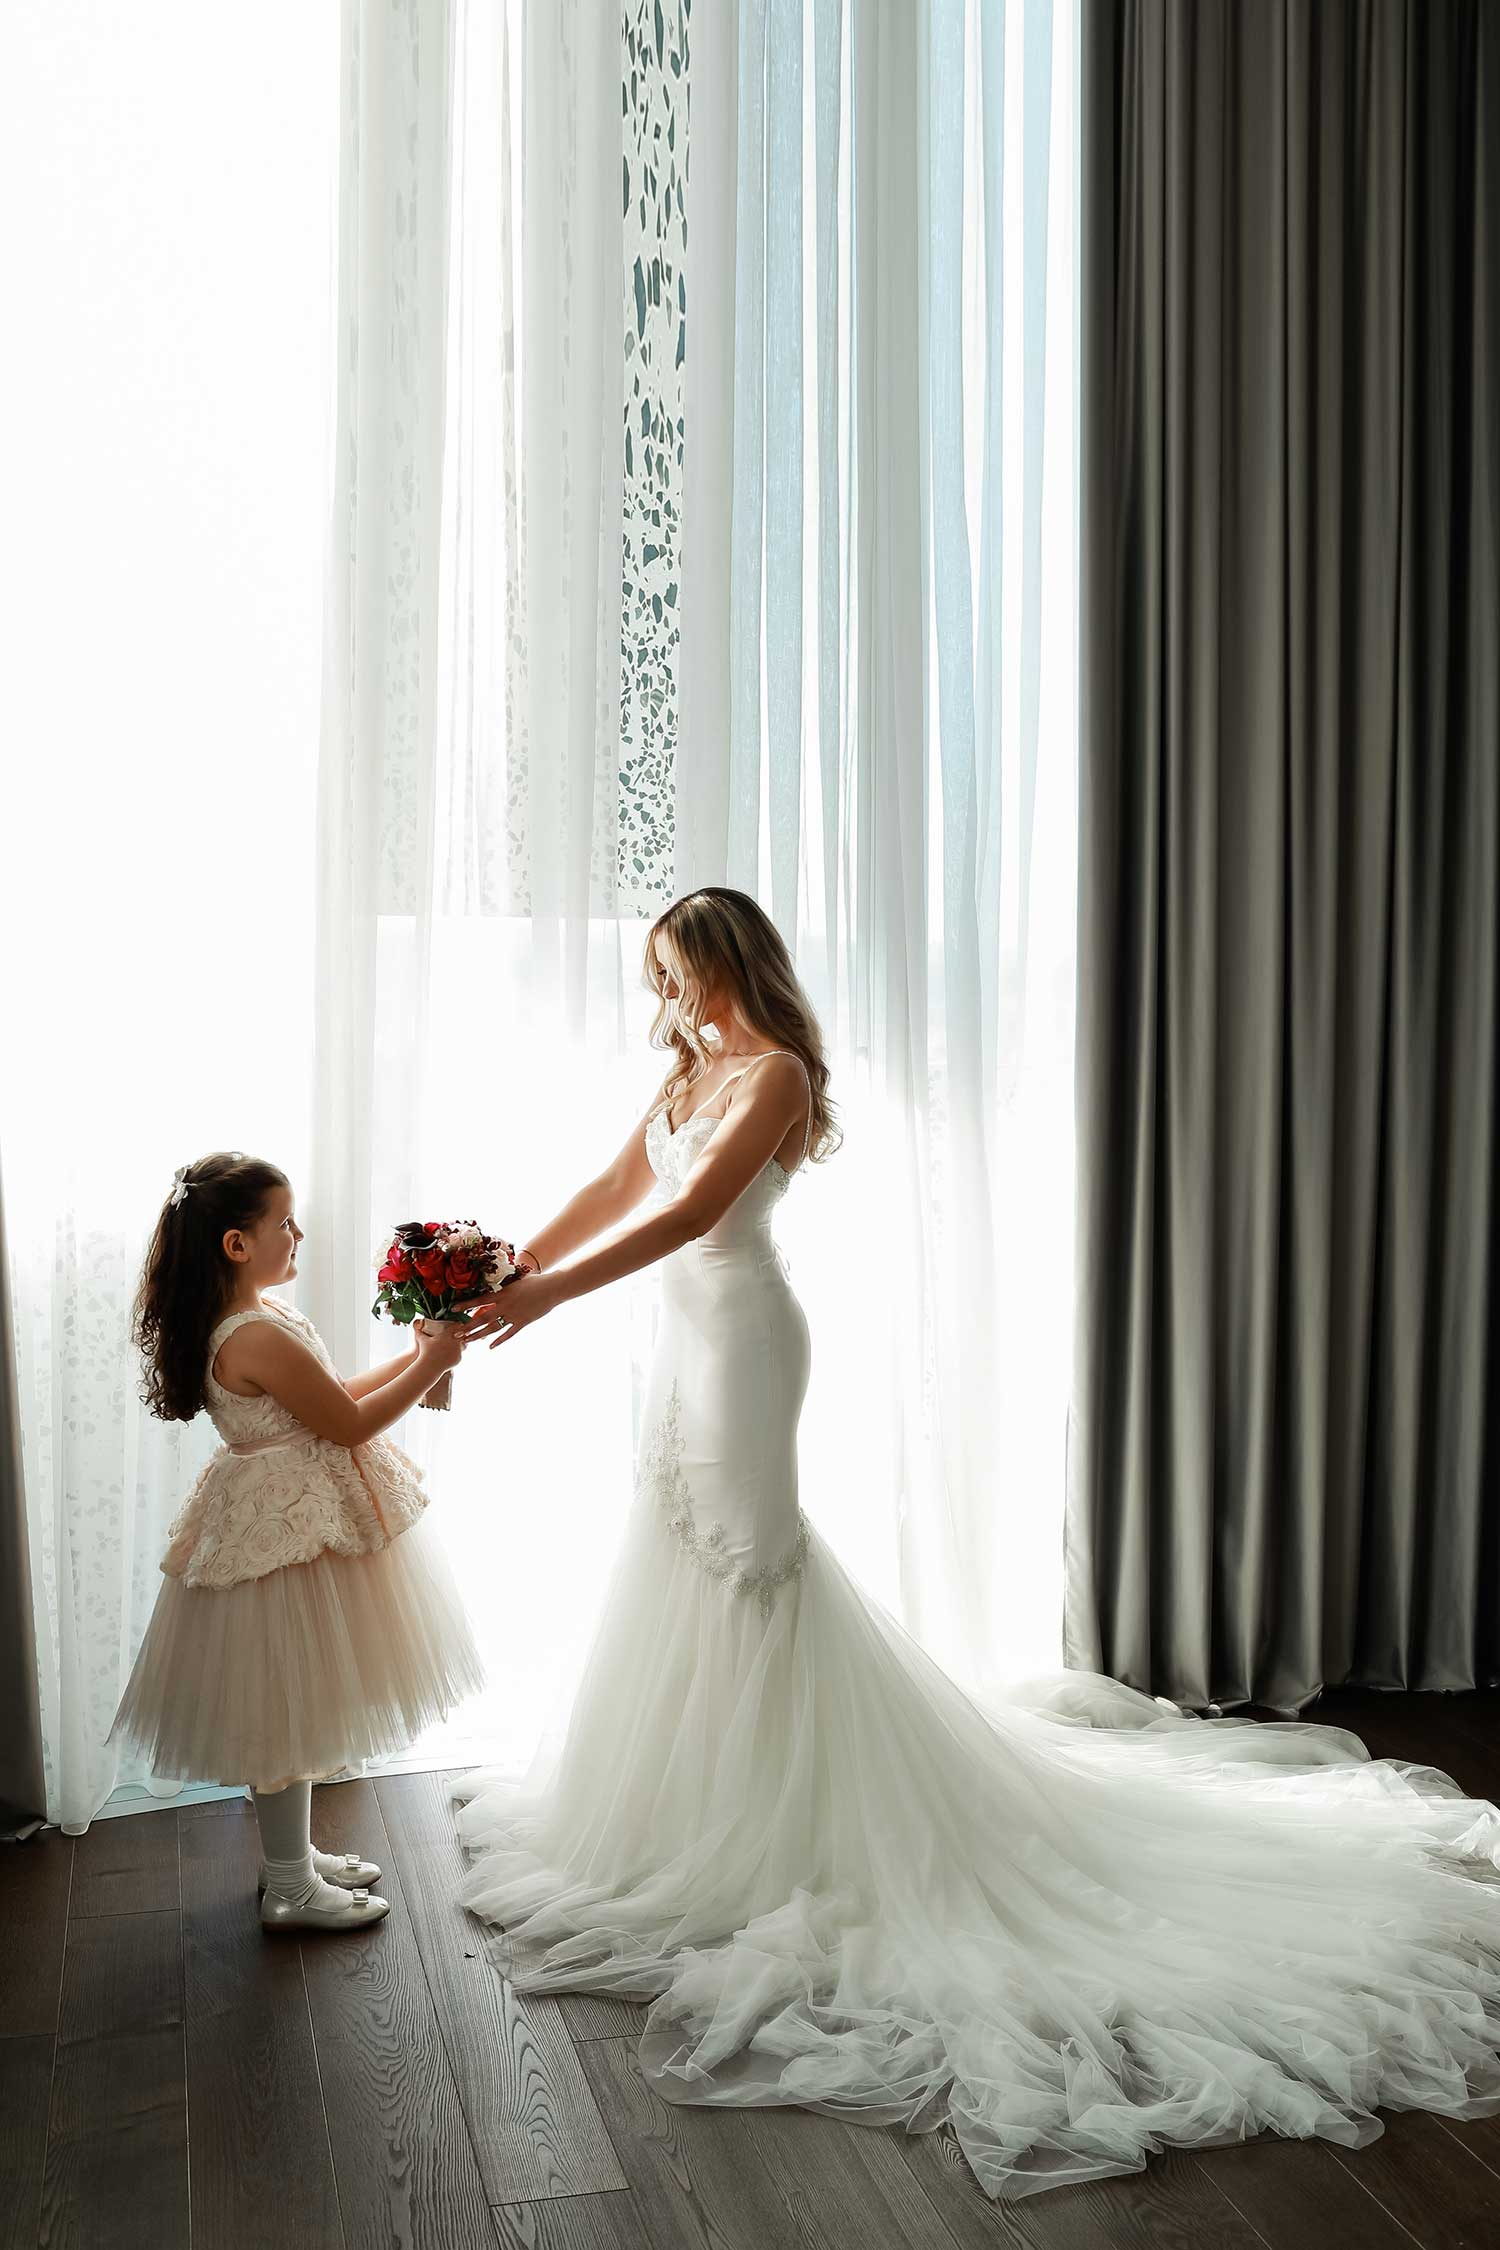 Bride and the little girl